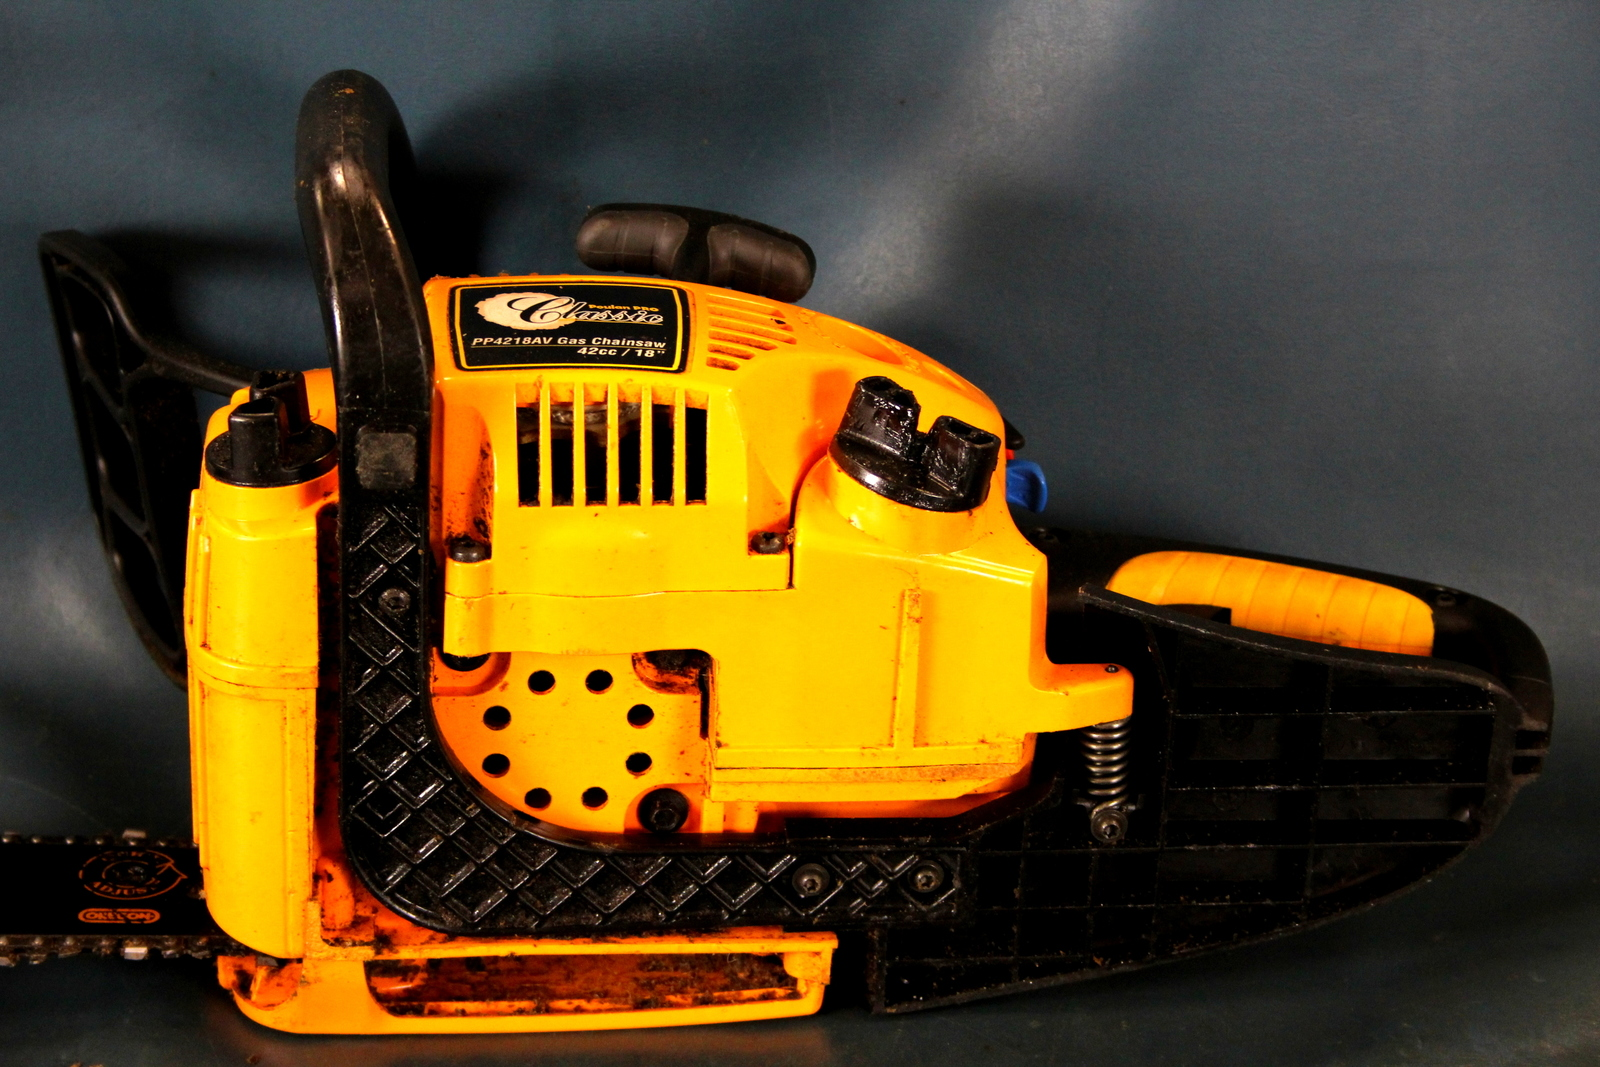 Poulan Pro Classic 18 Inch 42CC 2 Cycle Gas Chainsaw model ...